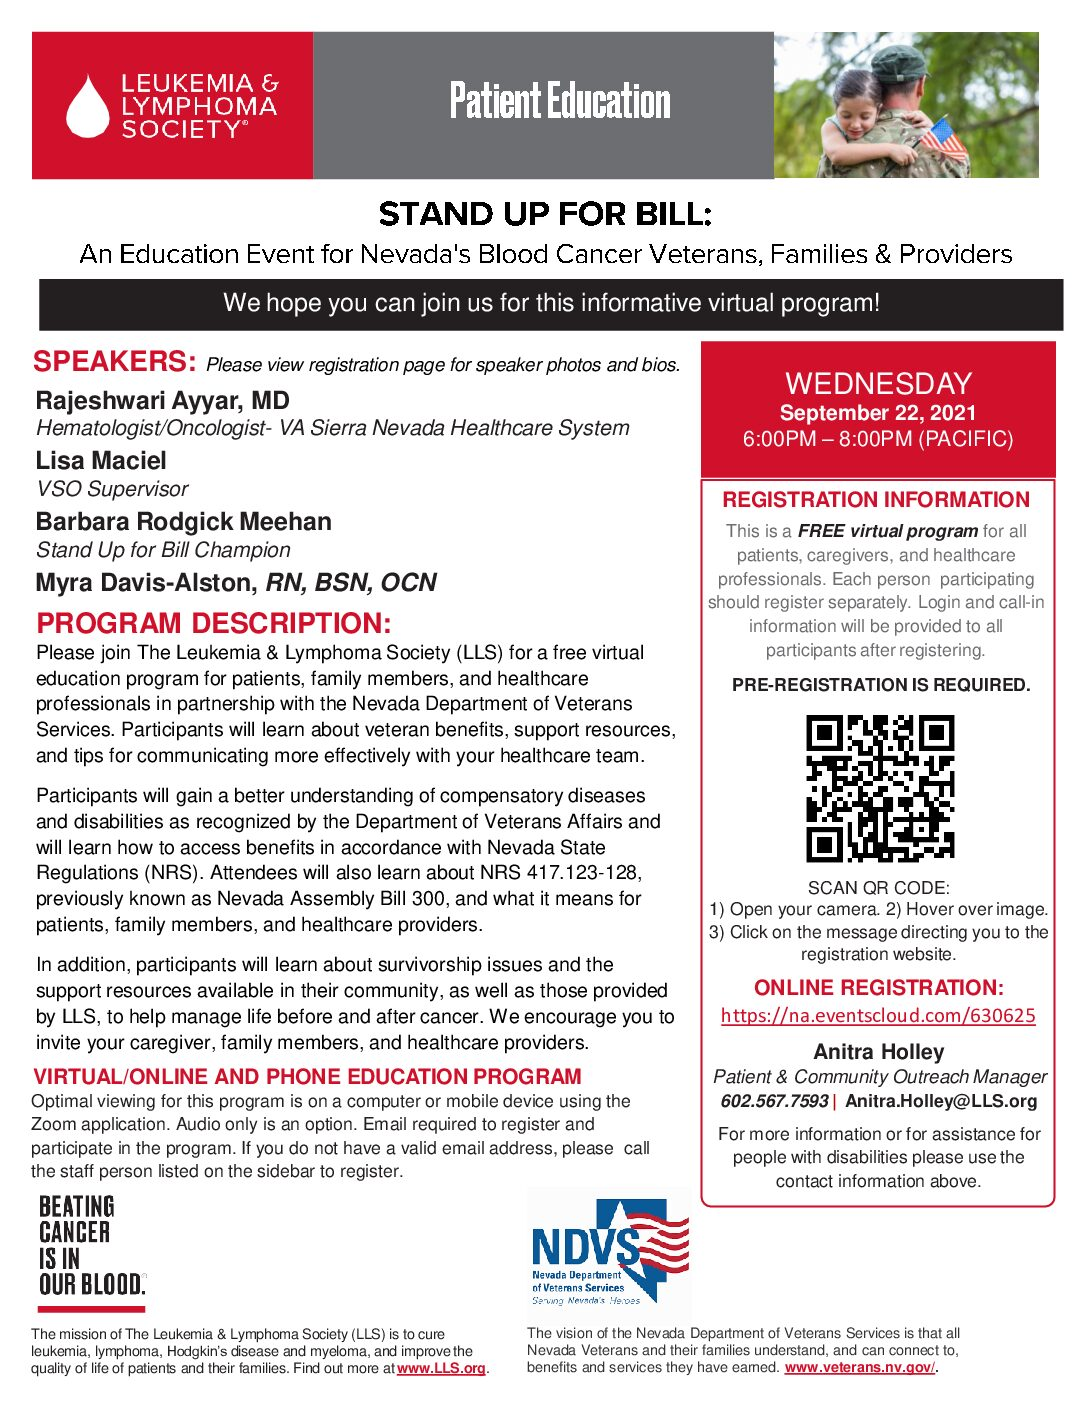 STAND FOR ALL BILL – Event Education – Free Virtual Program